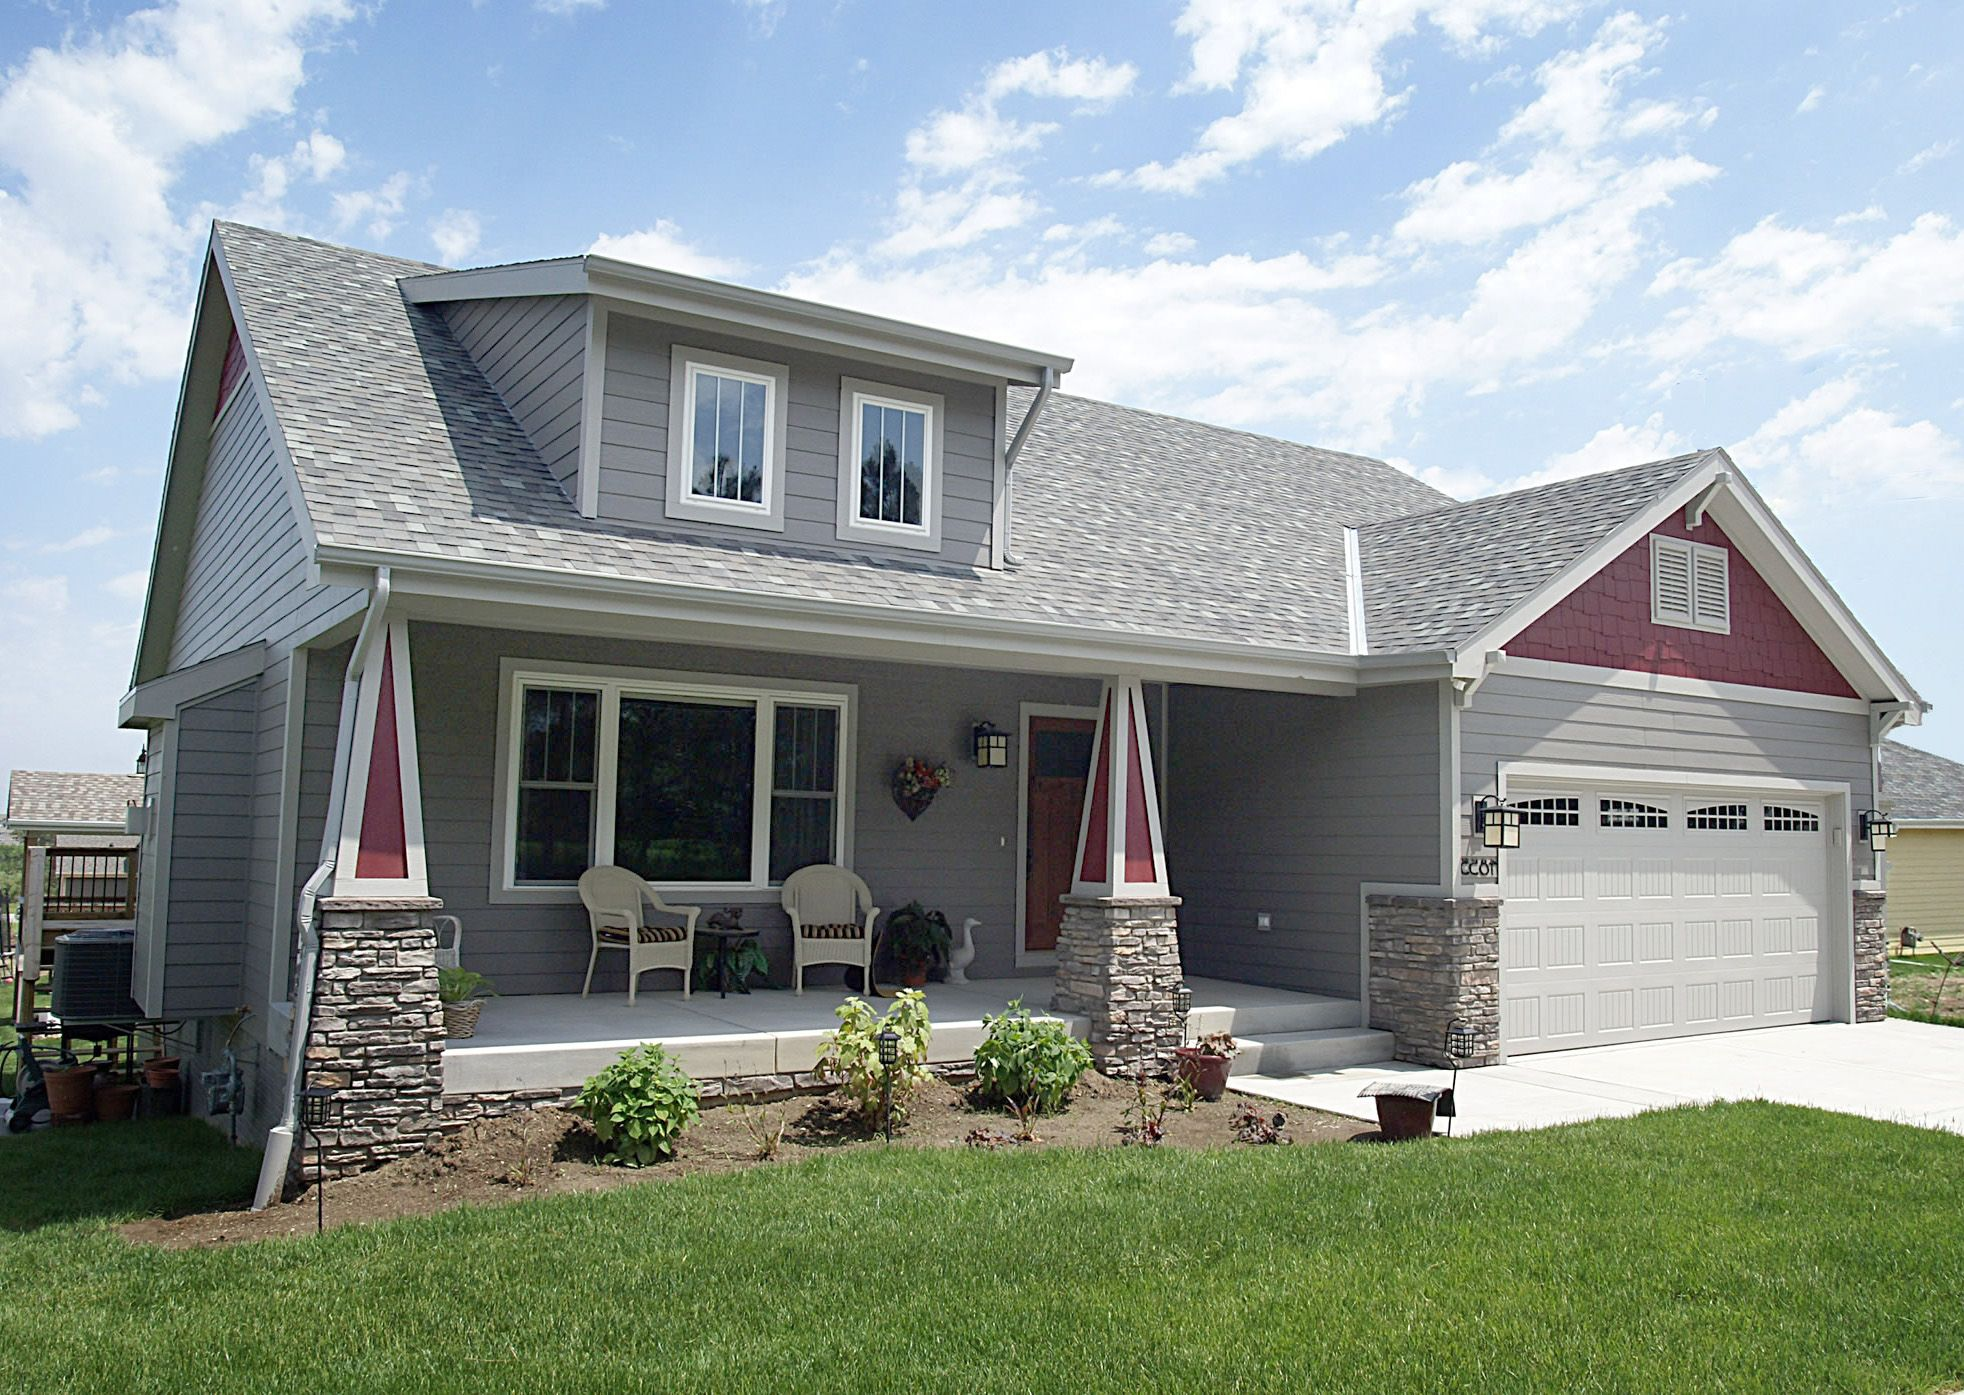 Top 10 Roof Dormer Types Plus Costs And Pros Cons In 2020 Shed Dormer Architectural Design House Plans Dormers